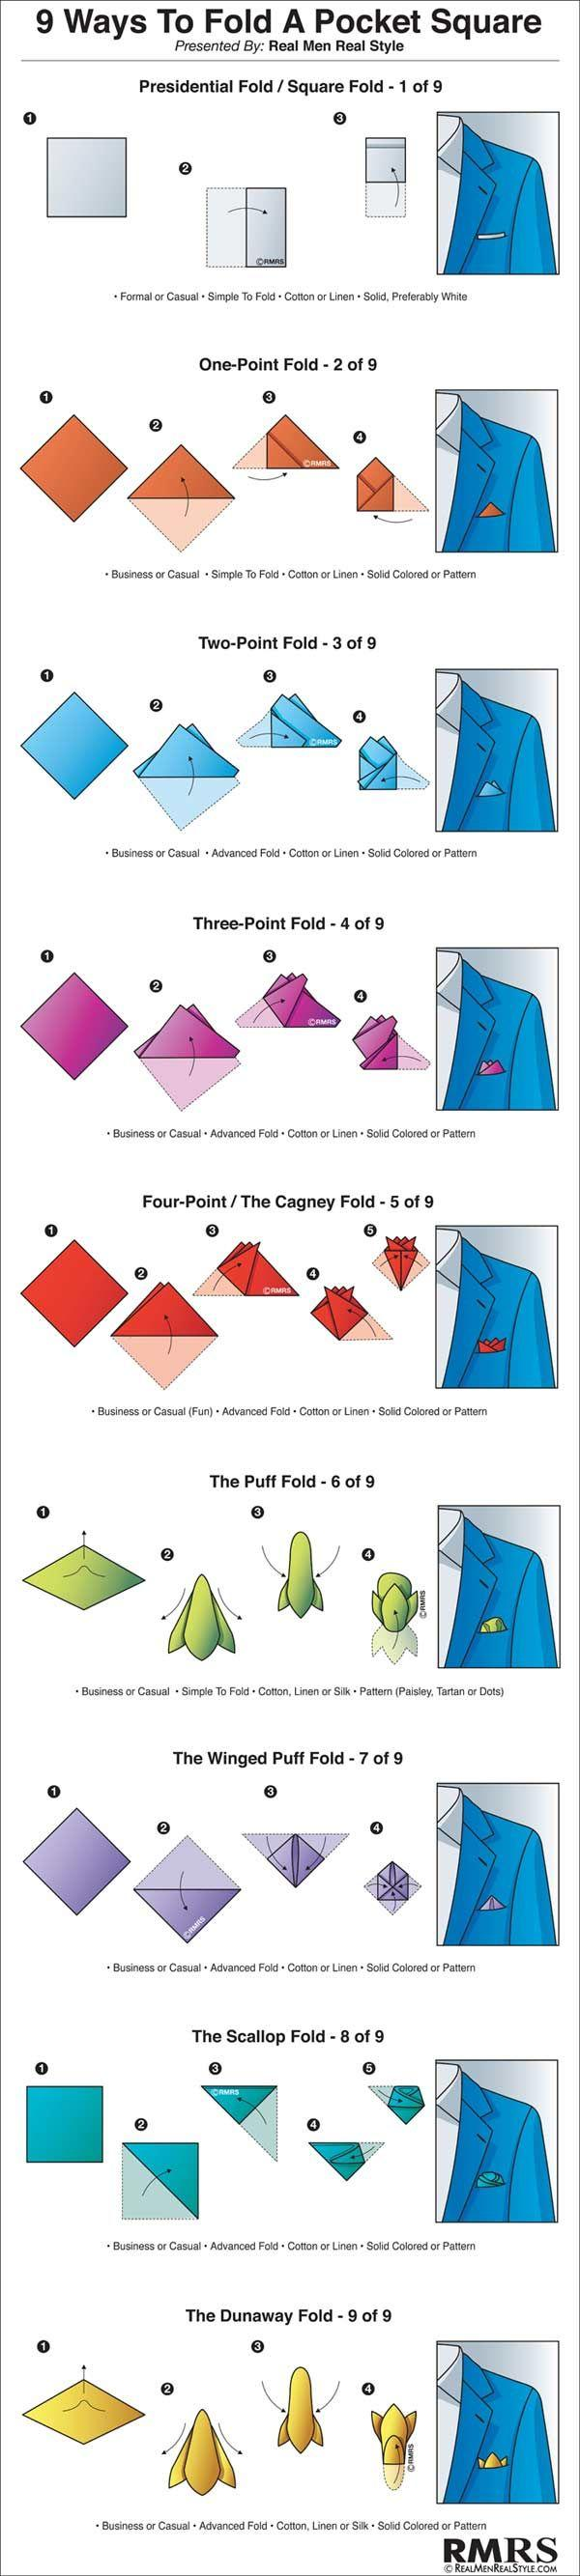 Свадьба - Step-by-step Guide For Every Pocket Square Fold You Could Ever Want!